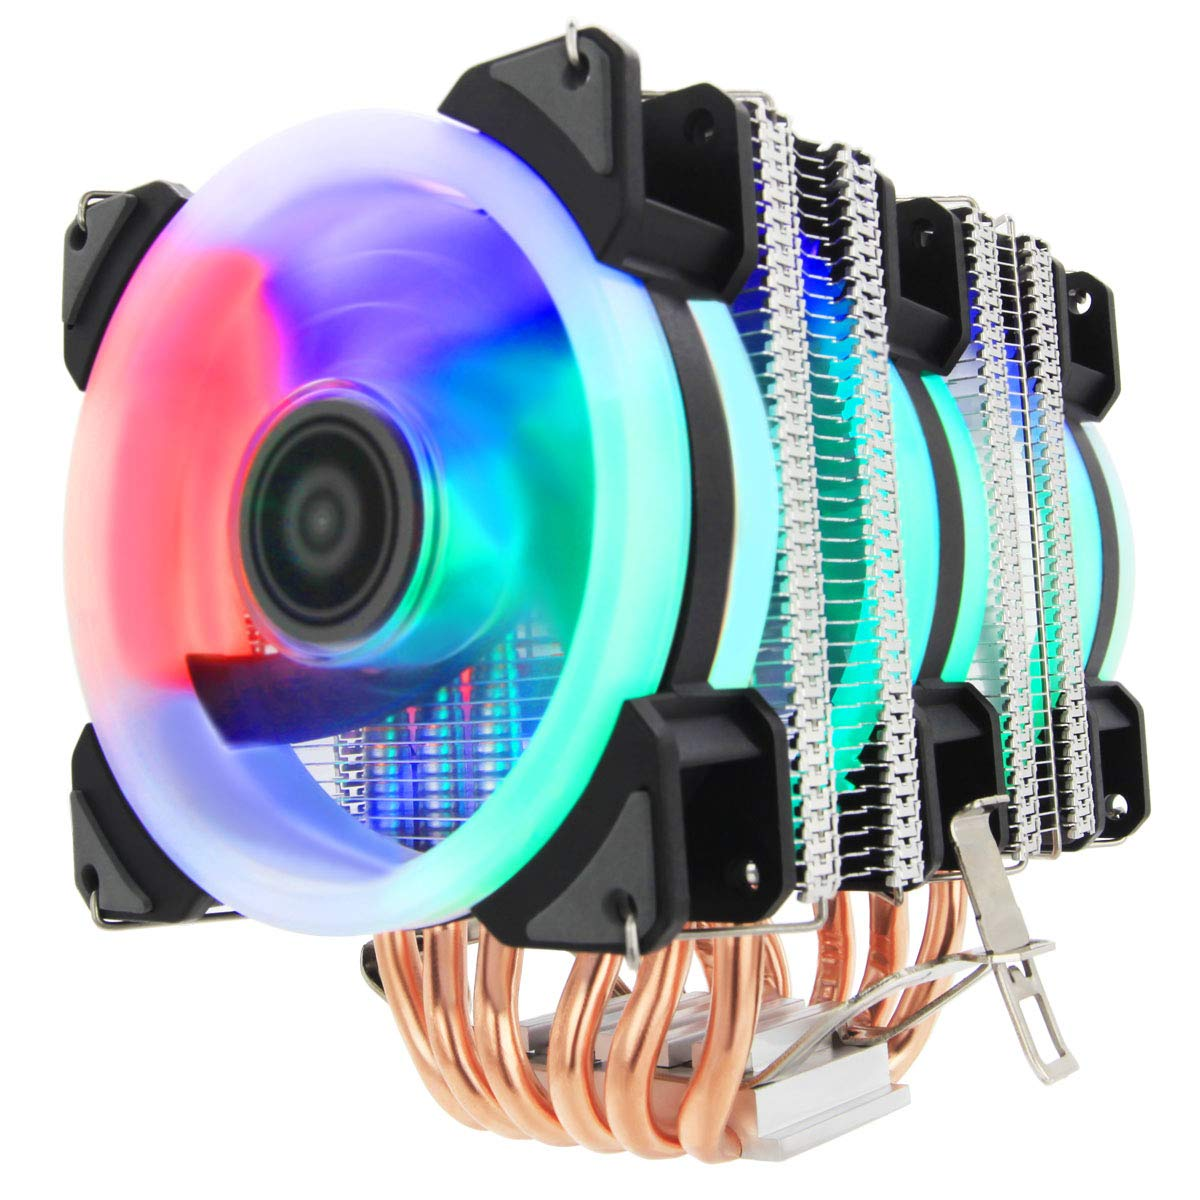 ALSEYE CPU Cooler PC Heatsink with 6 Heatpipes 4 Pin PWM 90mm LED Fan Computer CPU Air Cooling Cooler Radiator for Intel & AMD LED Color Won't Change